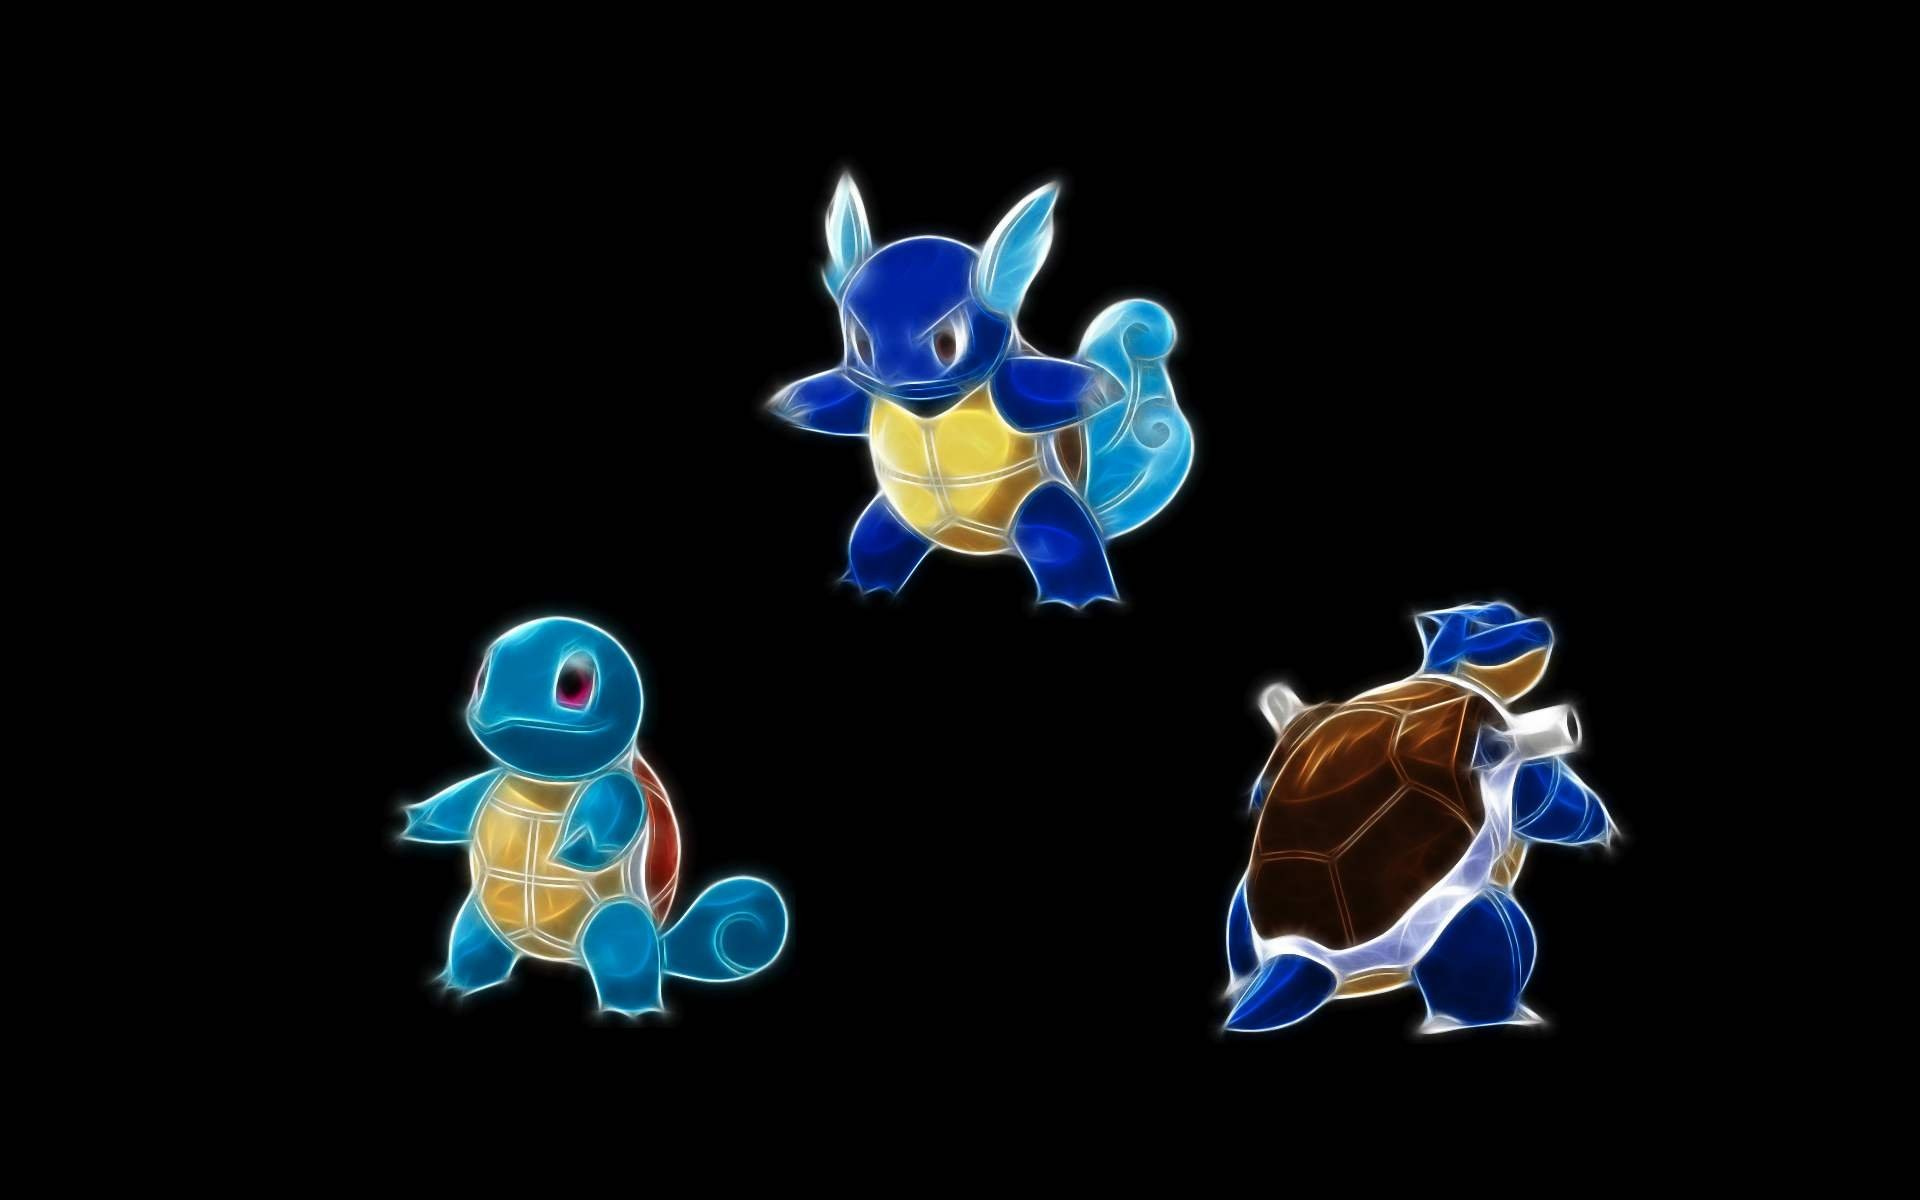 1920x1200 HD Pokemon Cartoons Download Squirtle Wallpapers Download Free 1920×1080  Squirtle Wallpapers (32 Wallpapers